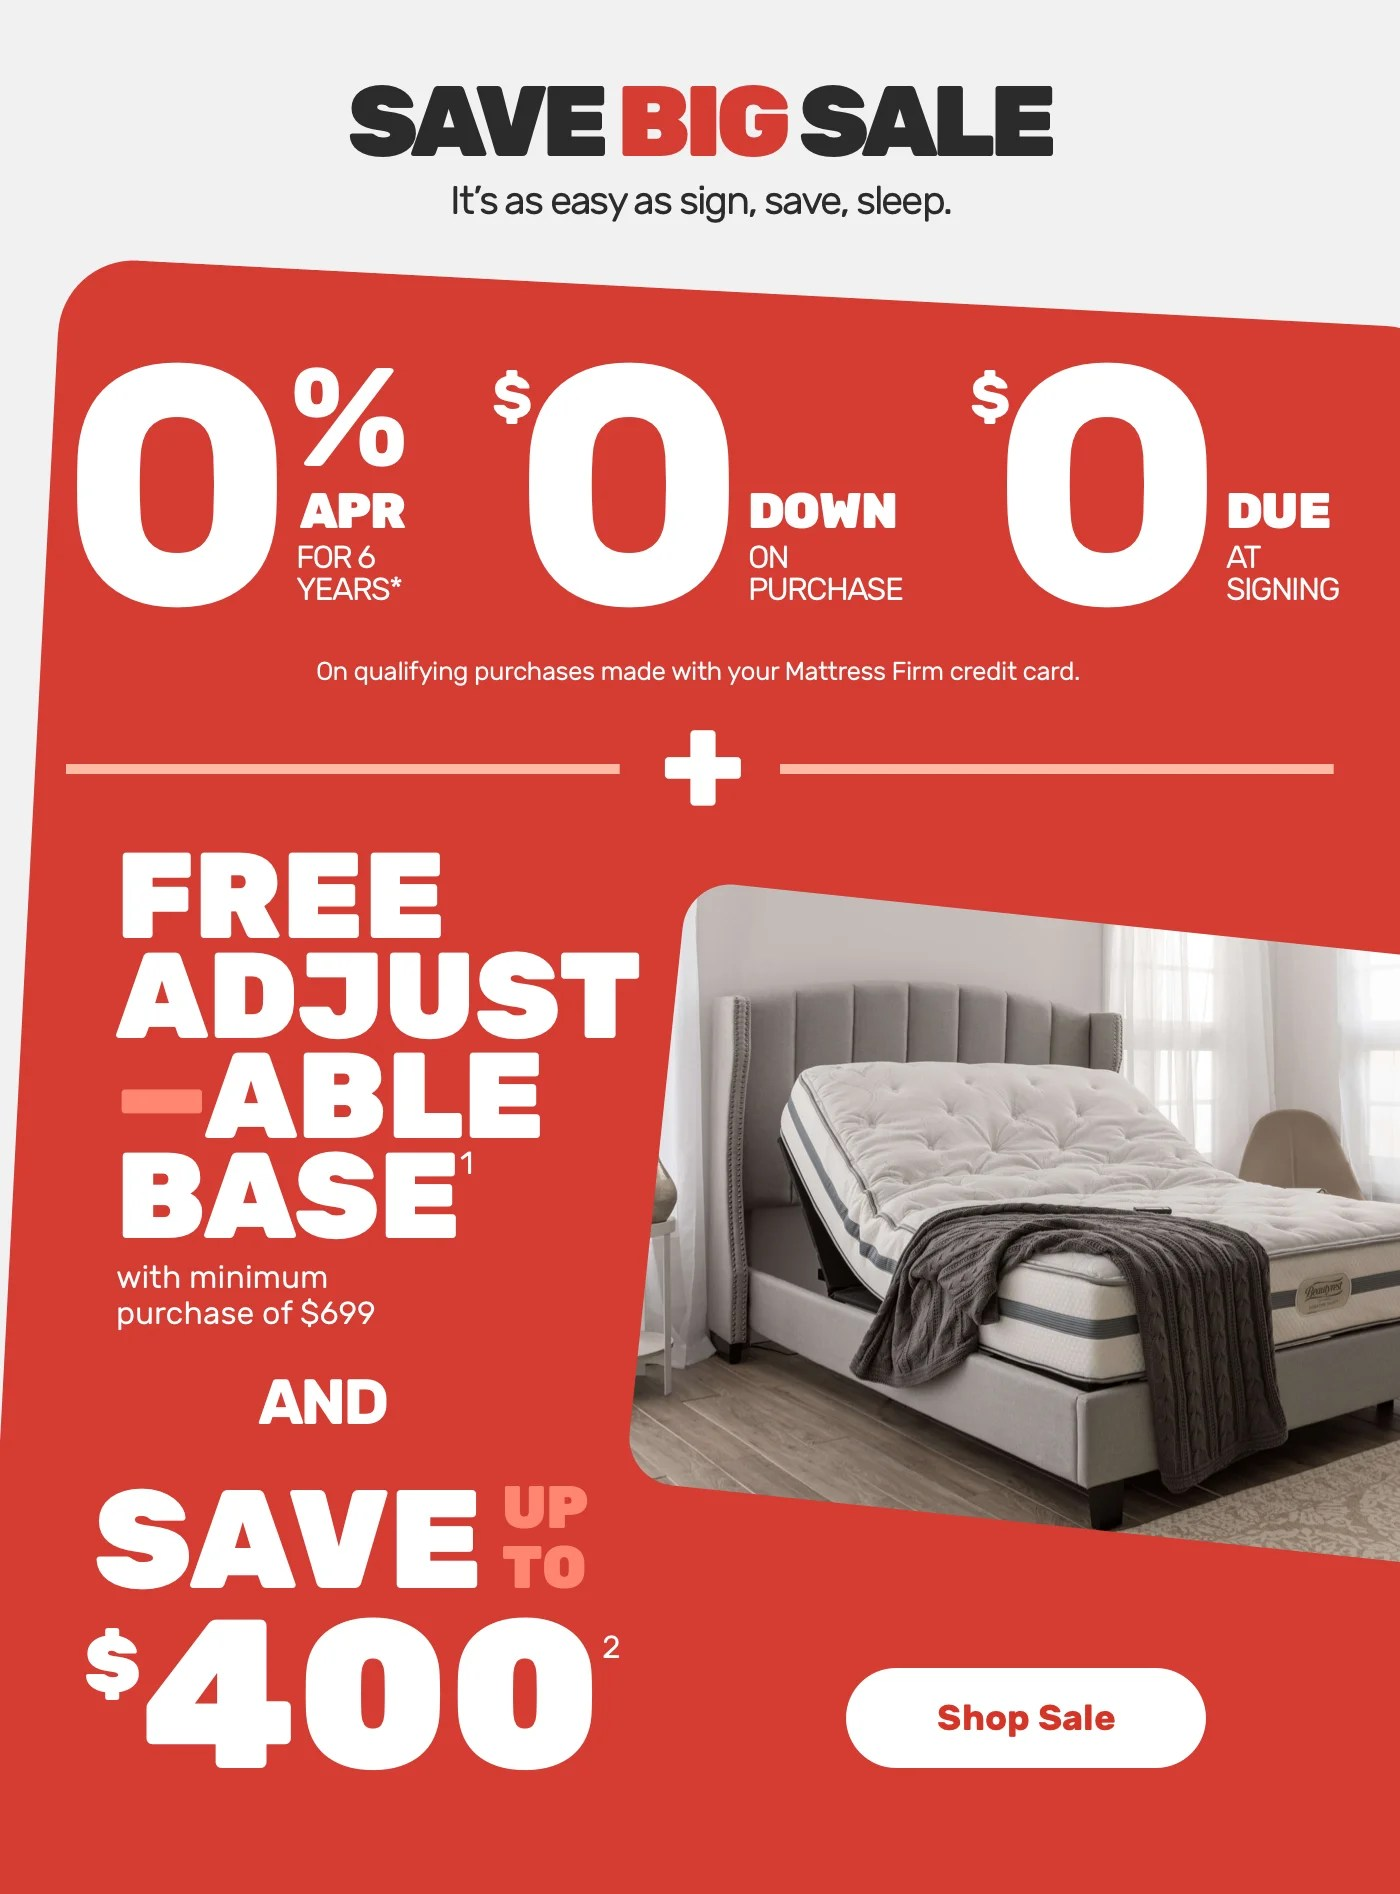 mattress firm free adjustable base for